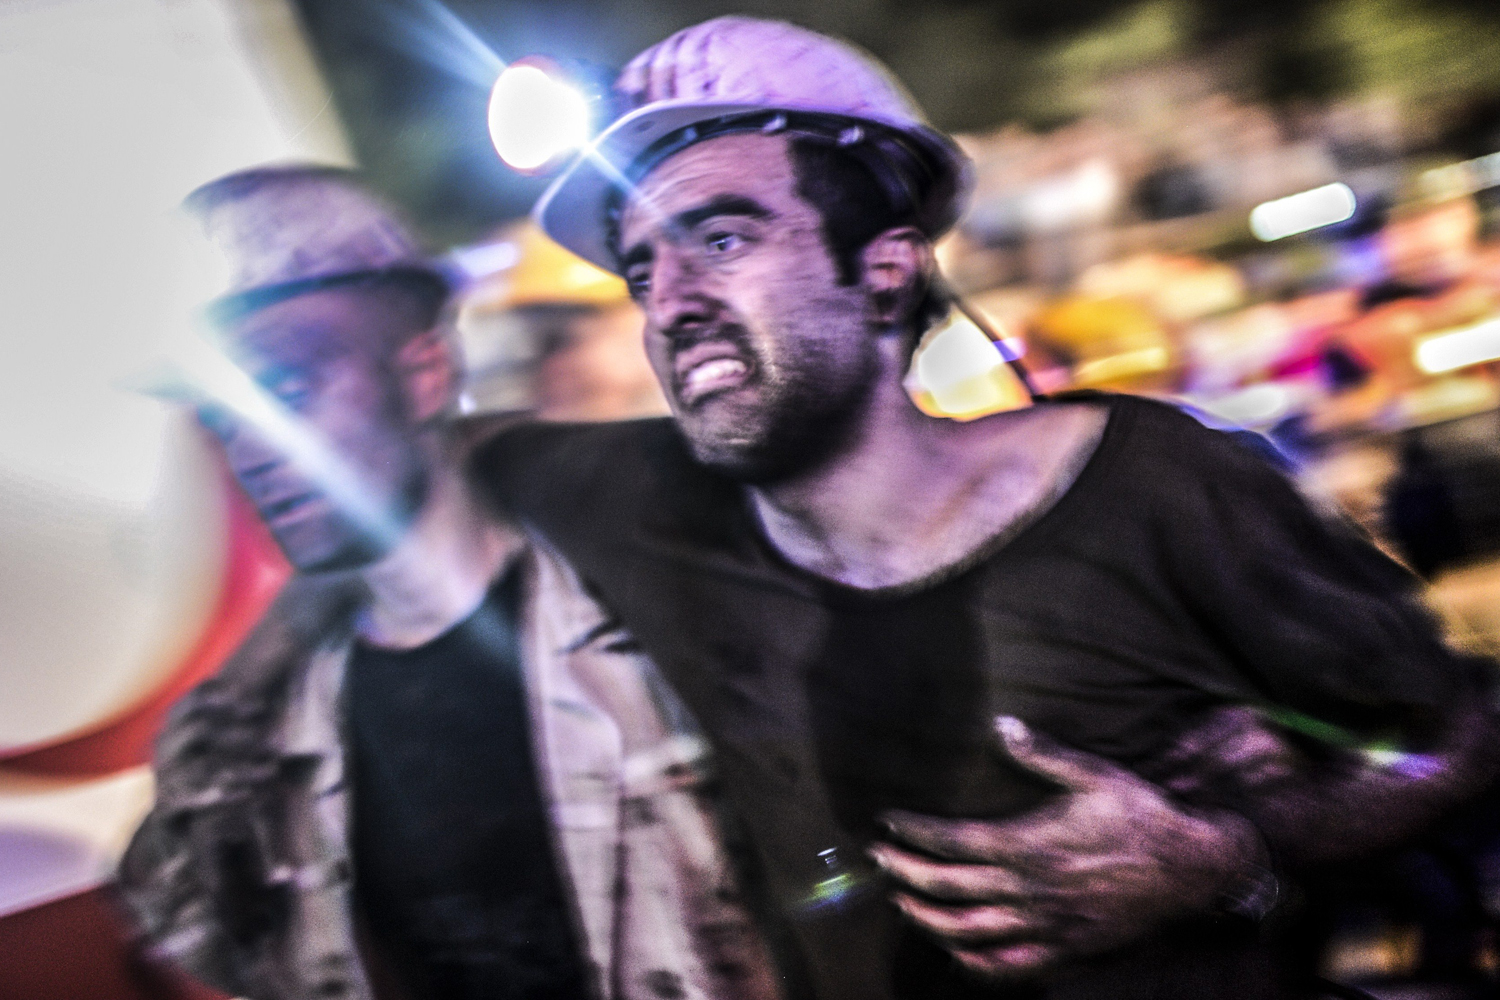 An injured miner is carried by rescuers after an explosion in a coal mine in Manisa, Turkey, May 13, 2014.